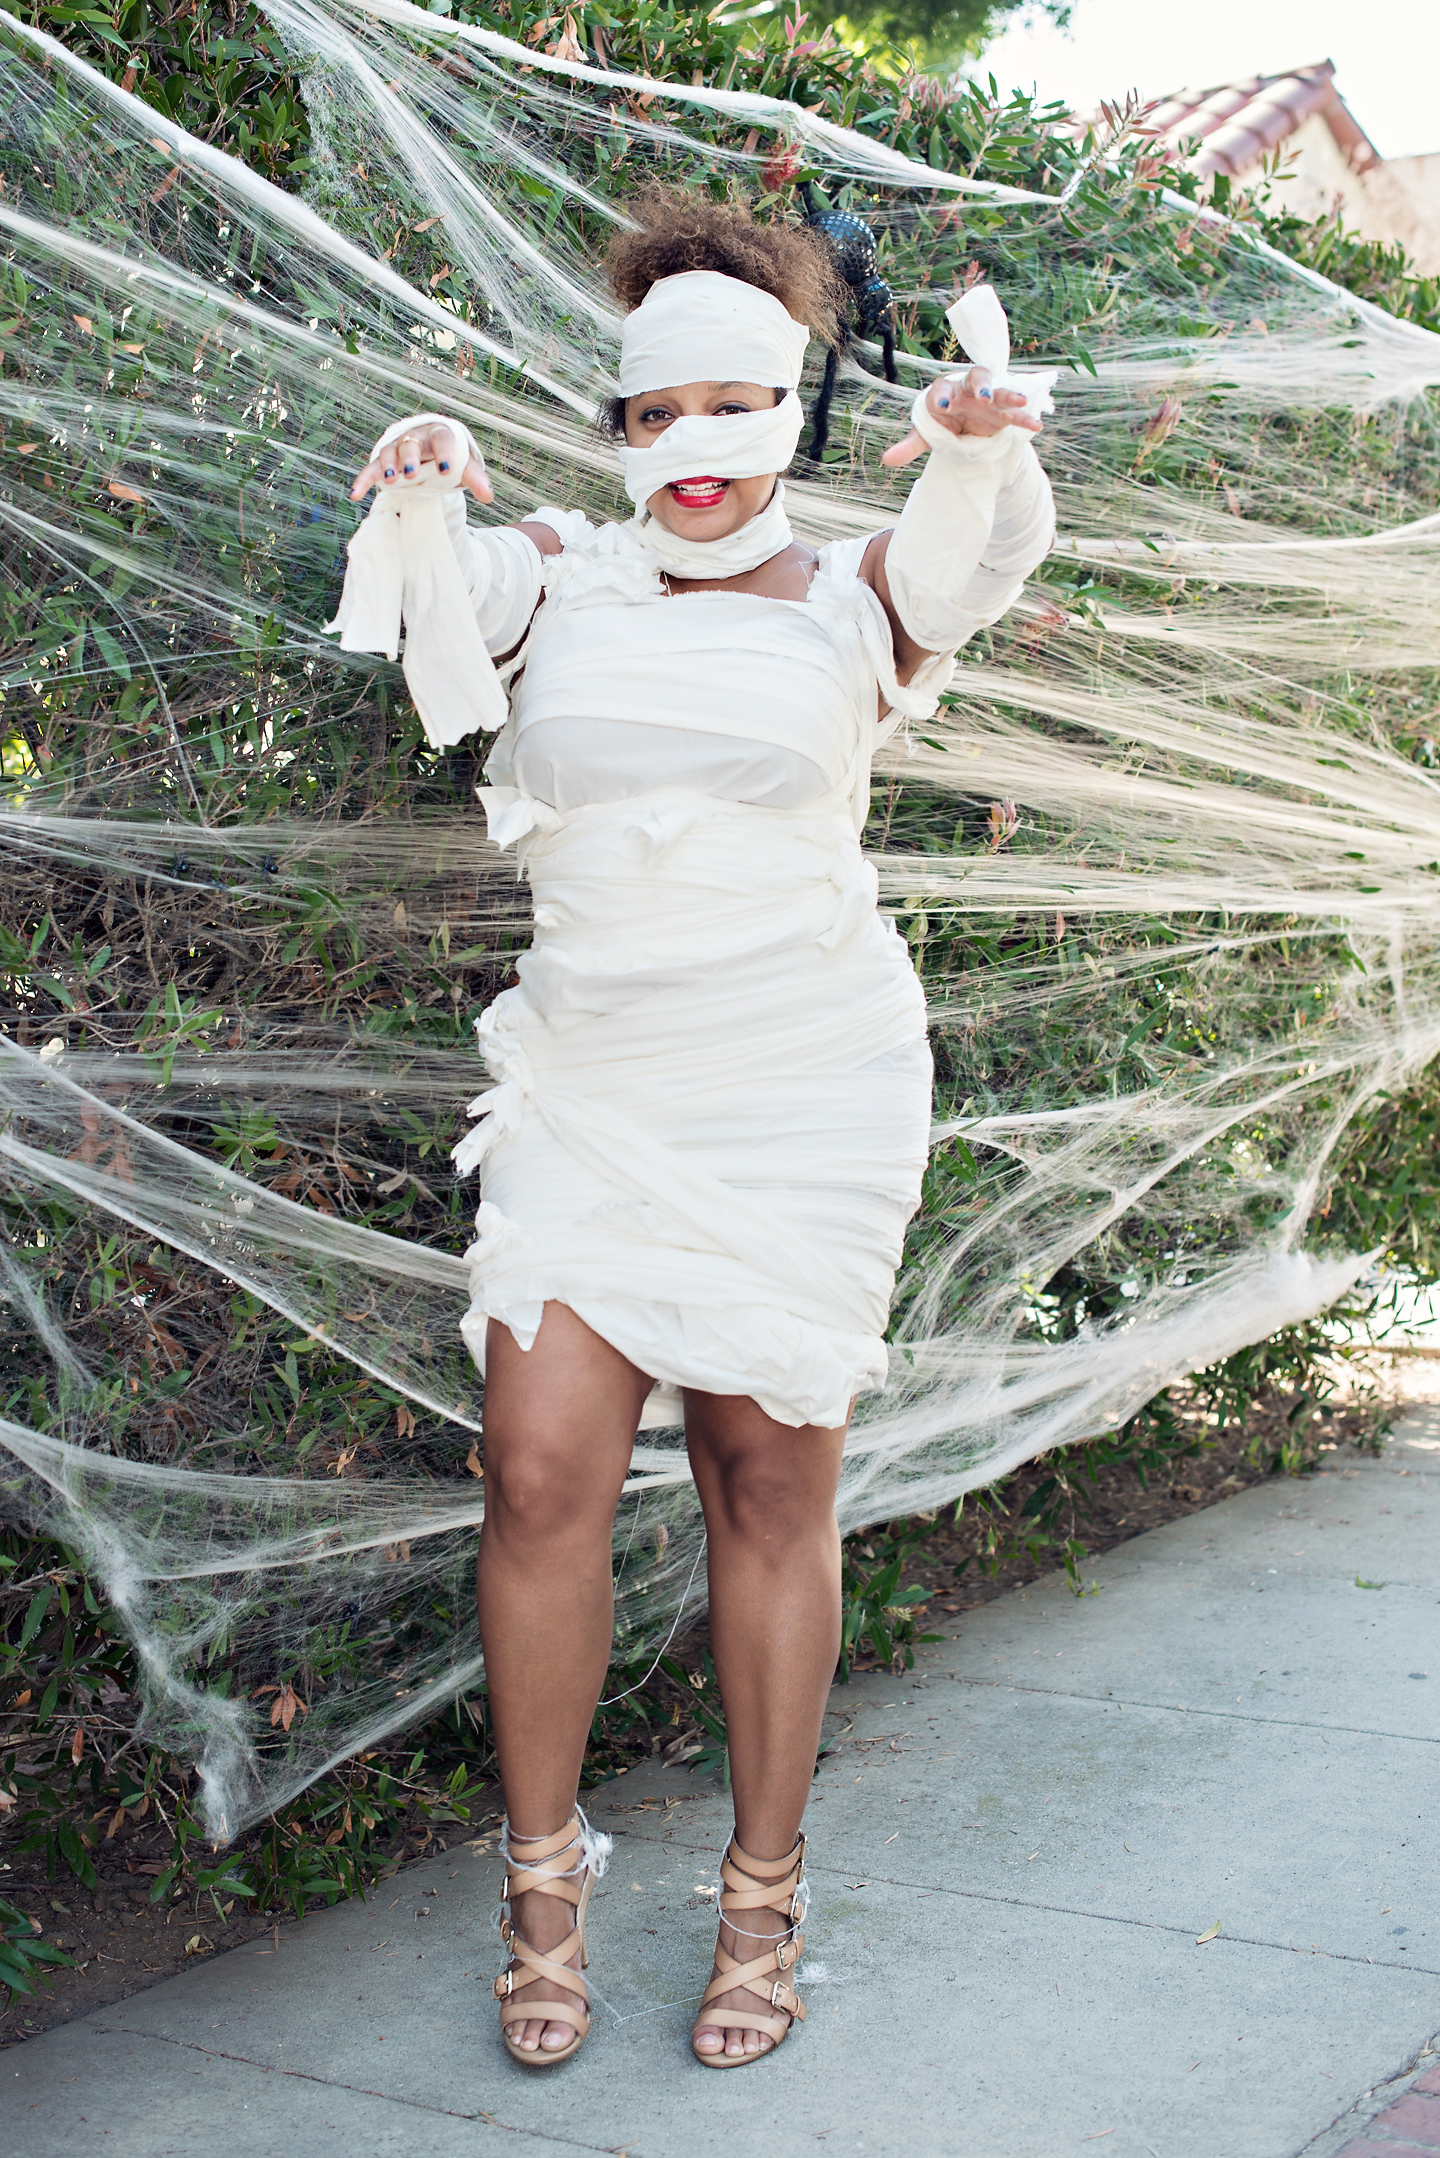 Miss Kris JCPenney Halloween Costume DIY 6 & THE WALKING DEAD: My Mummy Costume + JCPenney GIVEAWAY |